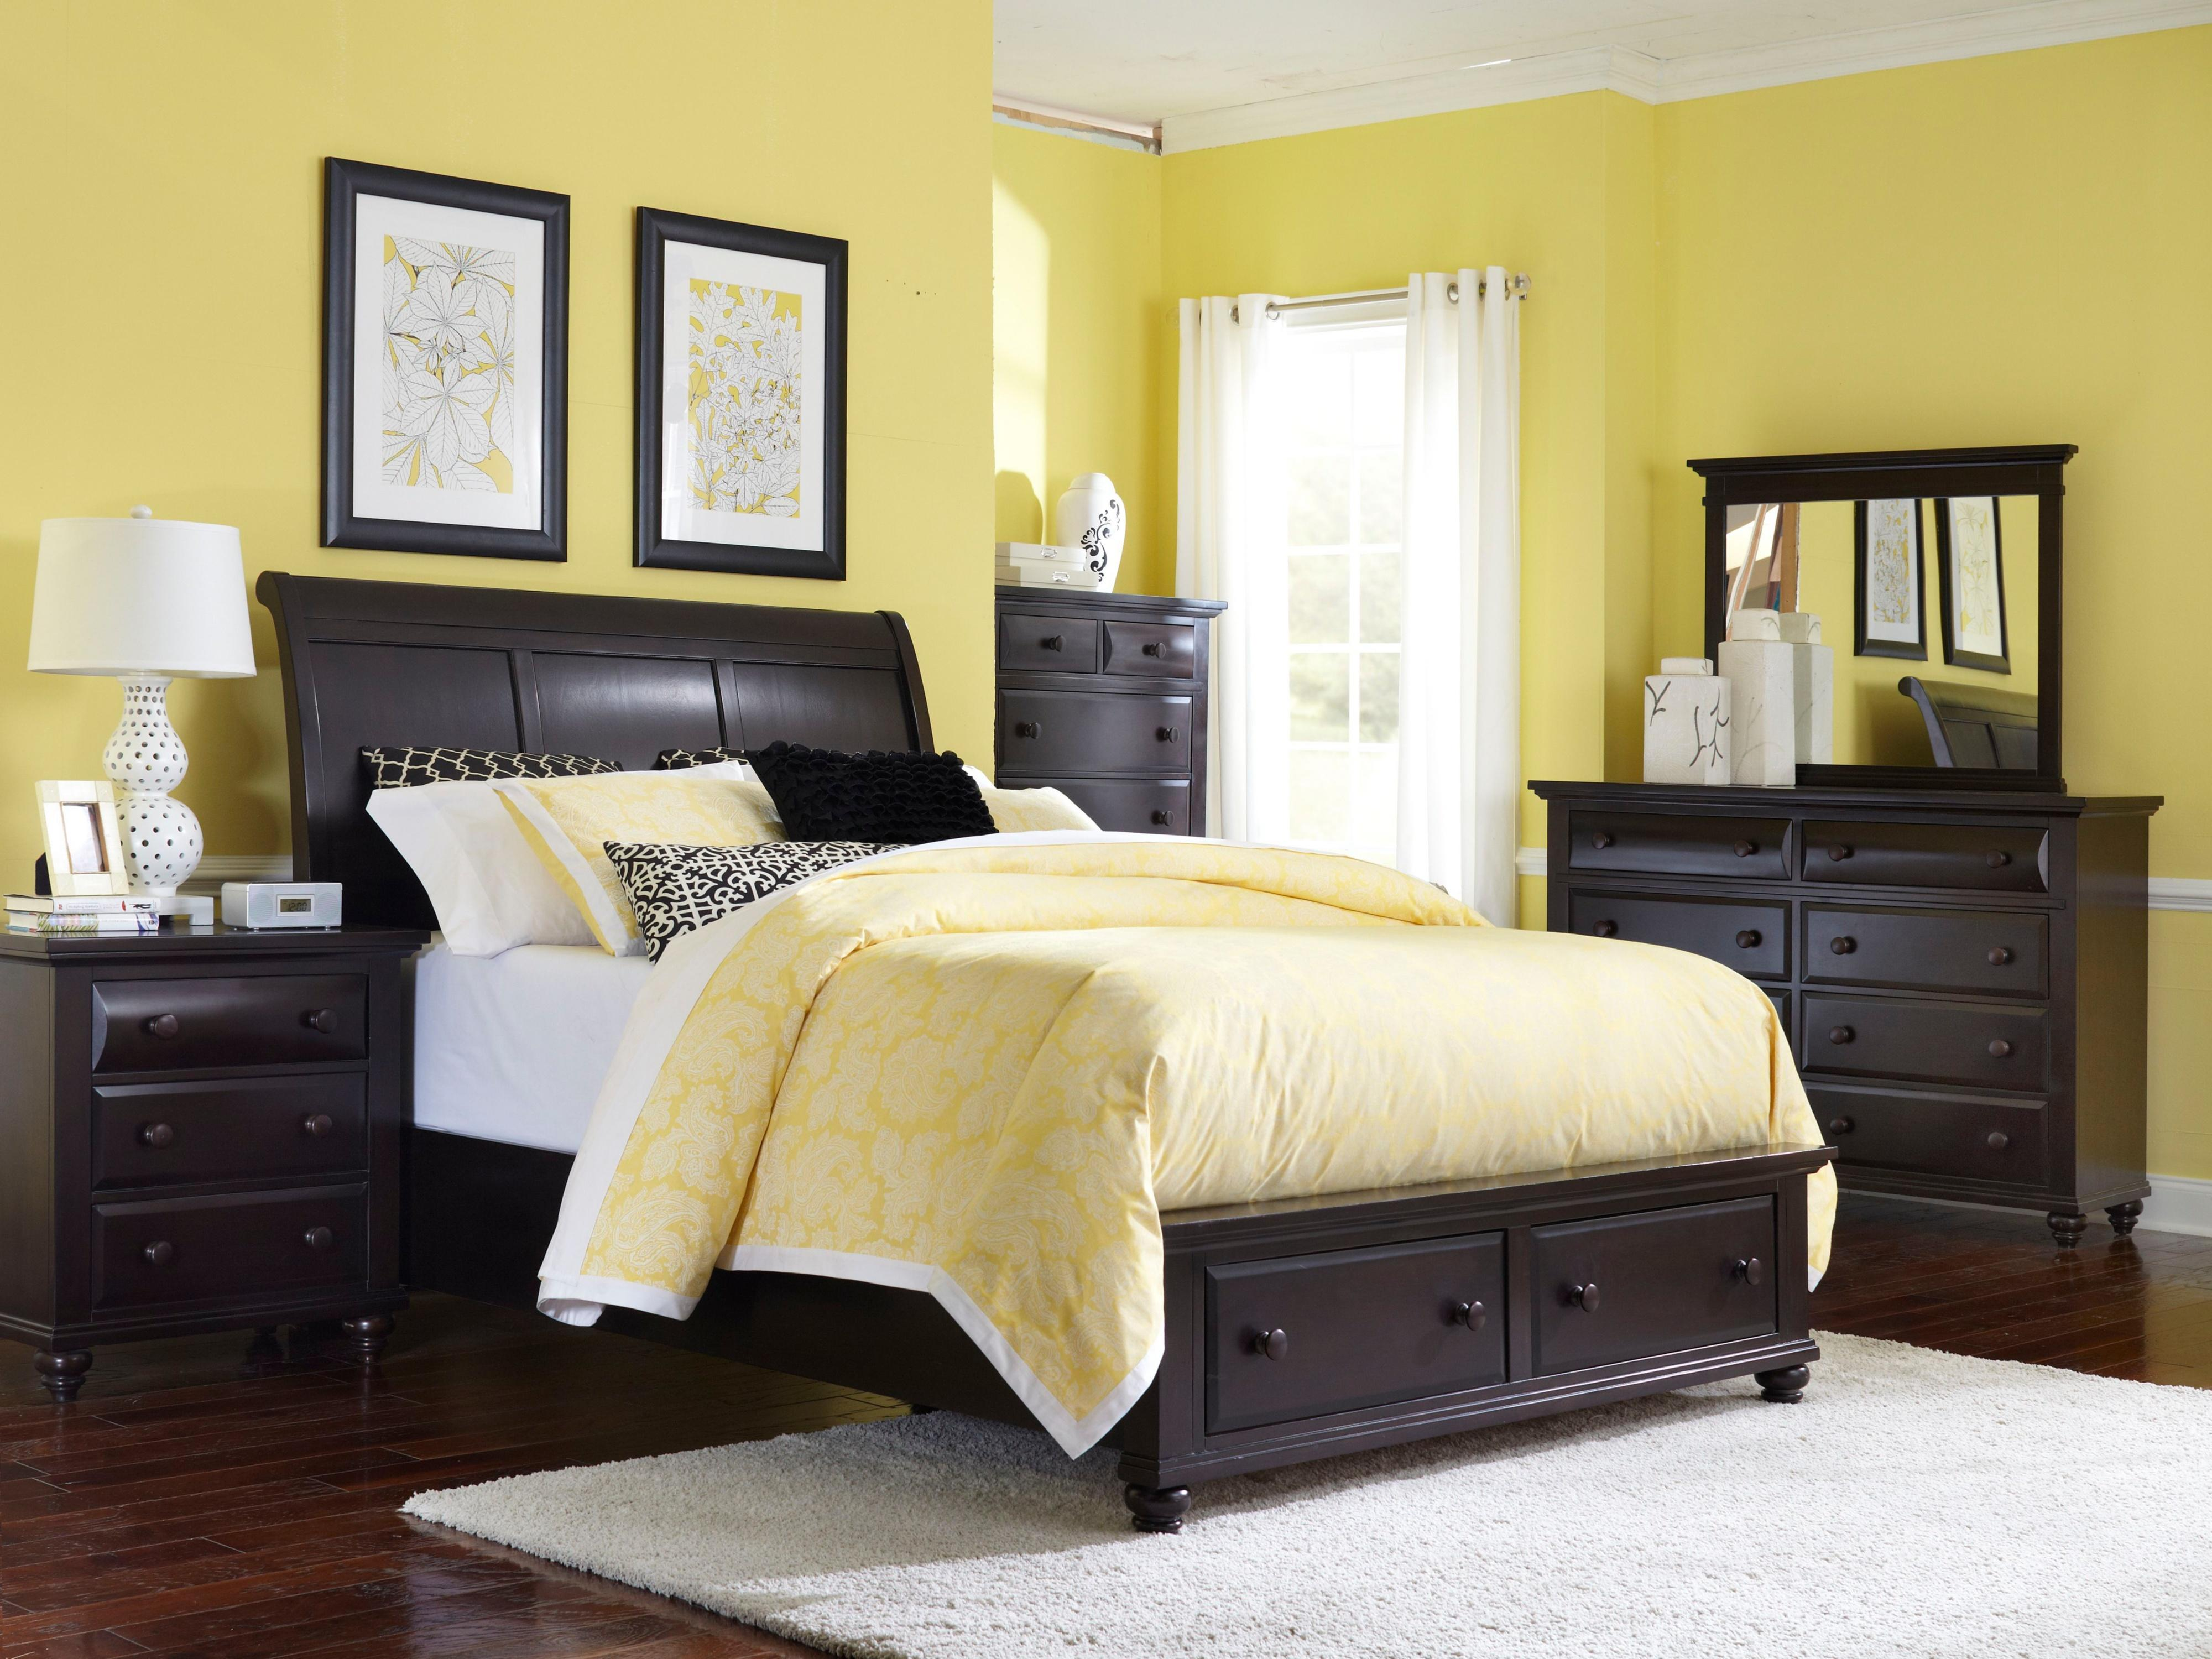 Broyhill Furniture Farnsworth King Bedroom Group - Item Number: 4856 K Bedroom Group 2